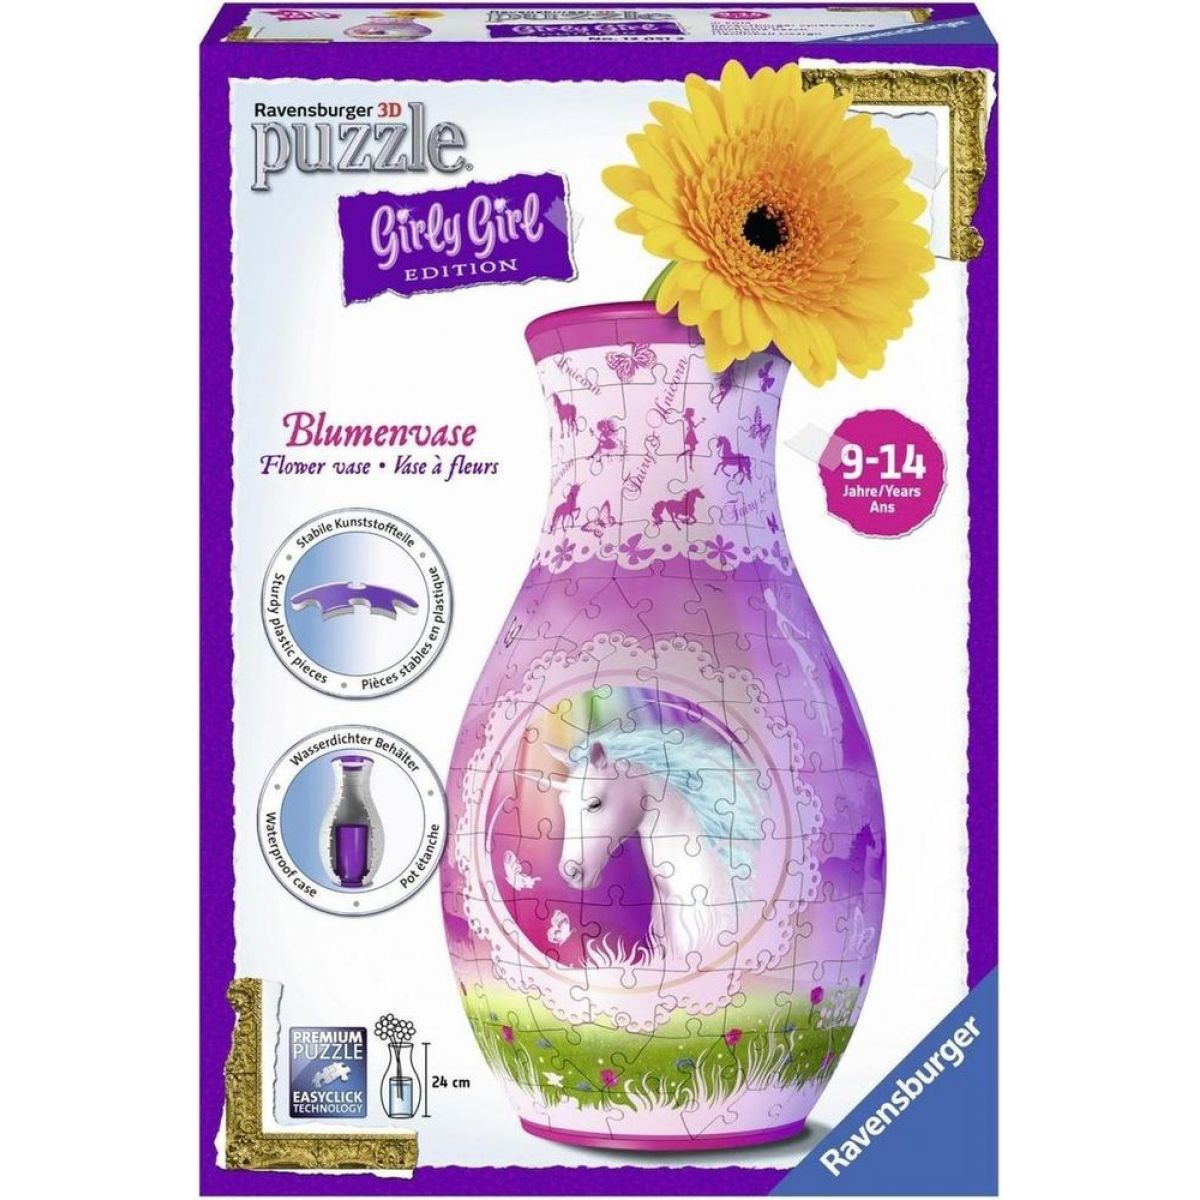 Ravensburger Puzzle 3D Girly Girl Váza - Jednorožec